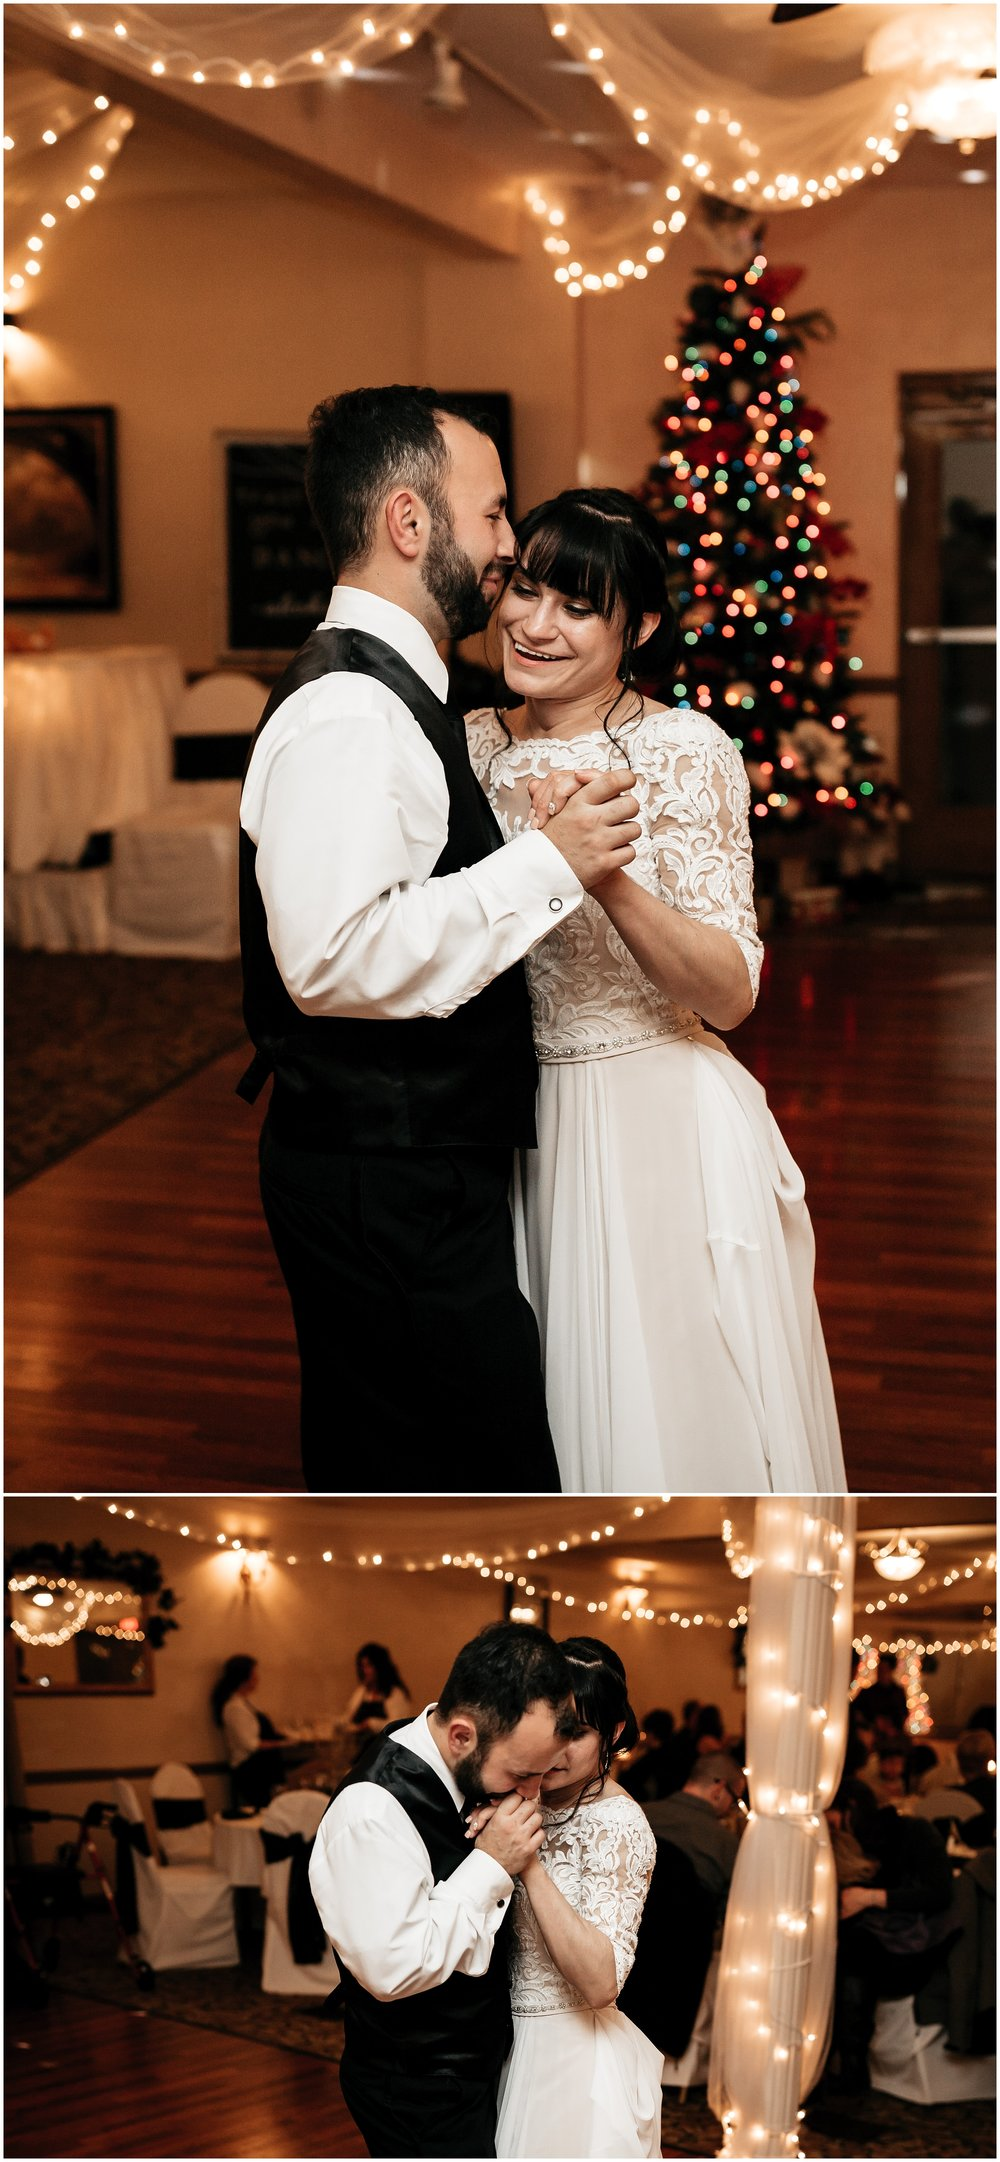 saintvincentcollegeweddingphotographer_0030.jpg